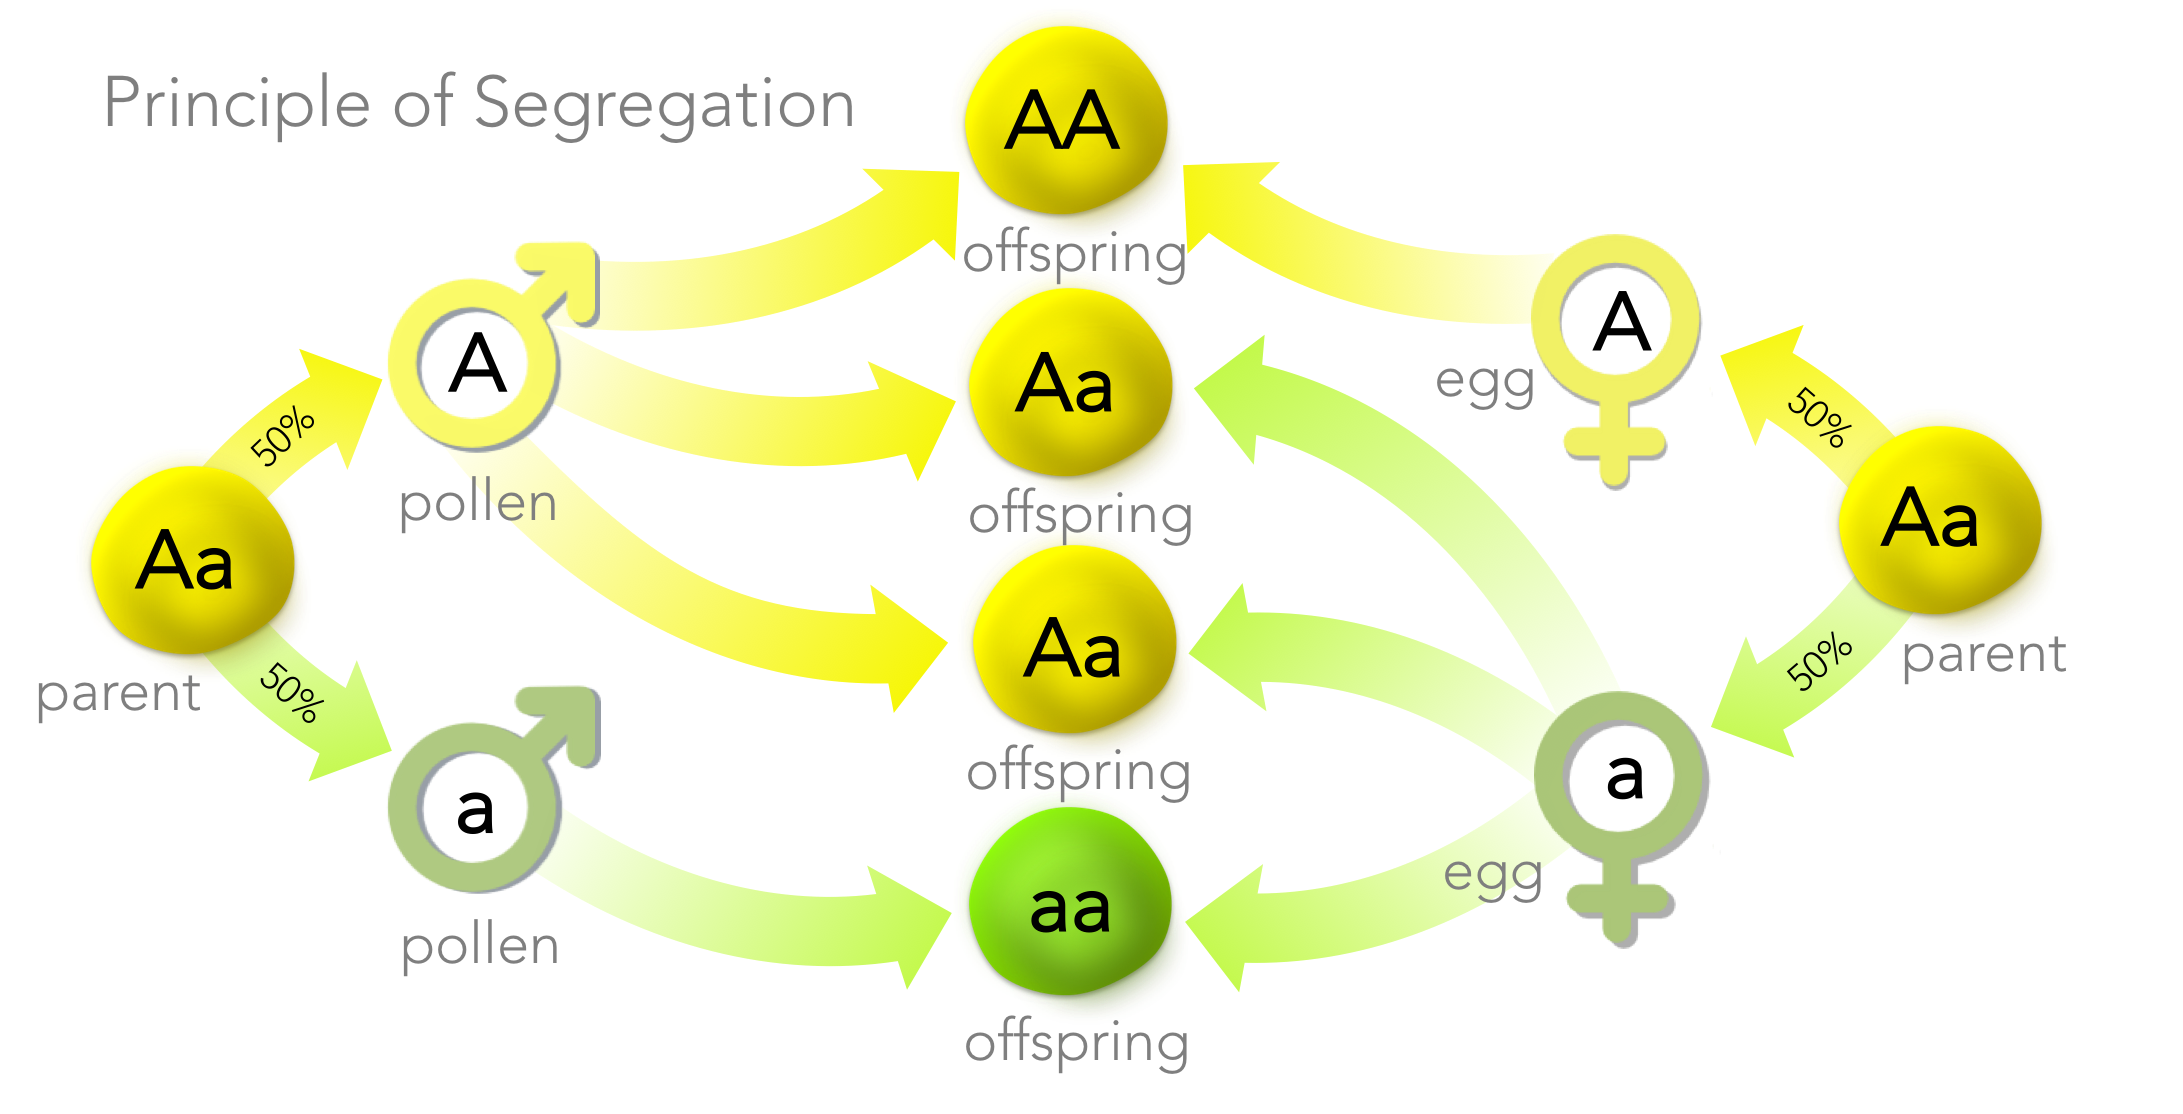 Figure 7. Principle of Segregation. Mendel discovered organisms have two copies of a gene (but potentially different alleles, as is the case with heterozygotes ( Aa ). In the production of gametes, each gamete receives exactly one copy of a gene, at random. During fertilization, gametes fuse at random producing a new organism.The Principle of Segregation explains Mendel's 3 dominant: 1 recessive ratio in the F2 generation.